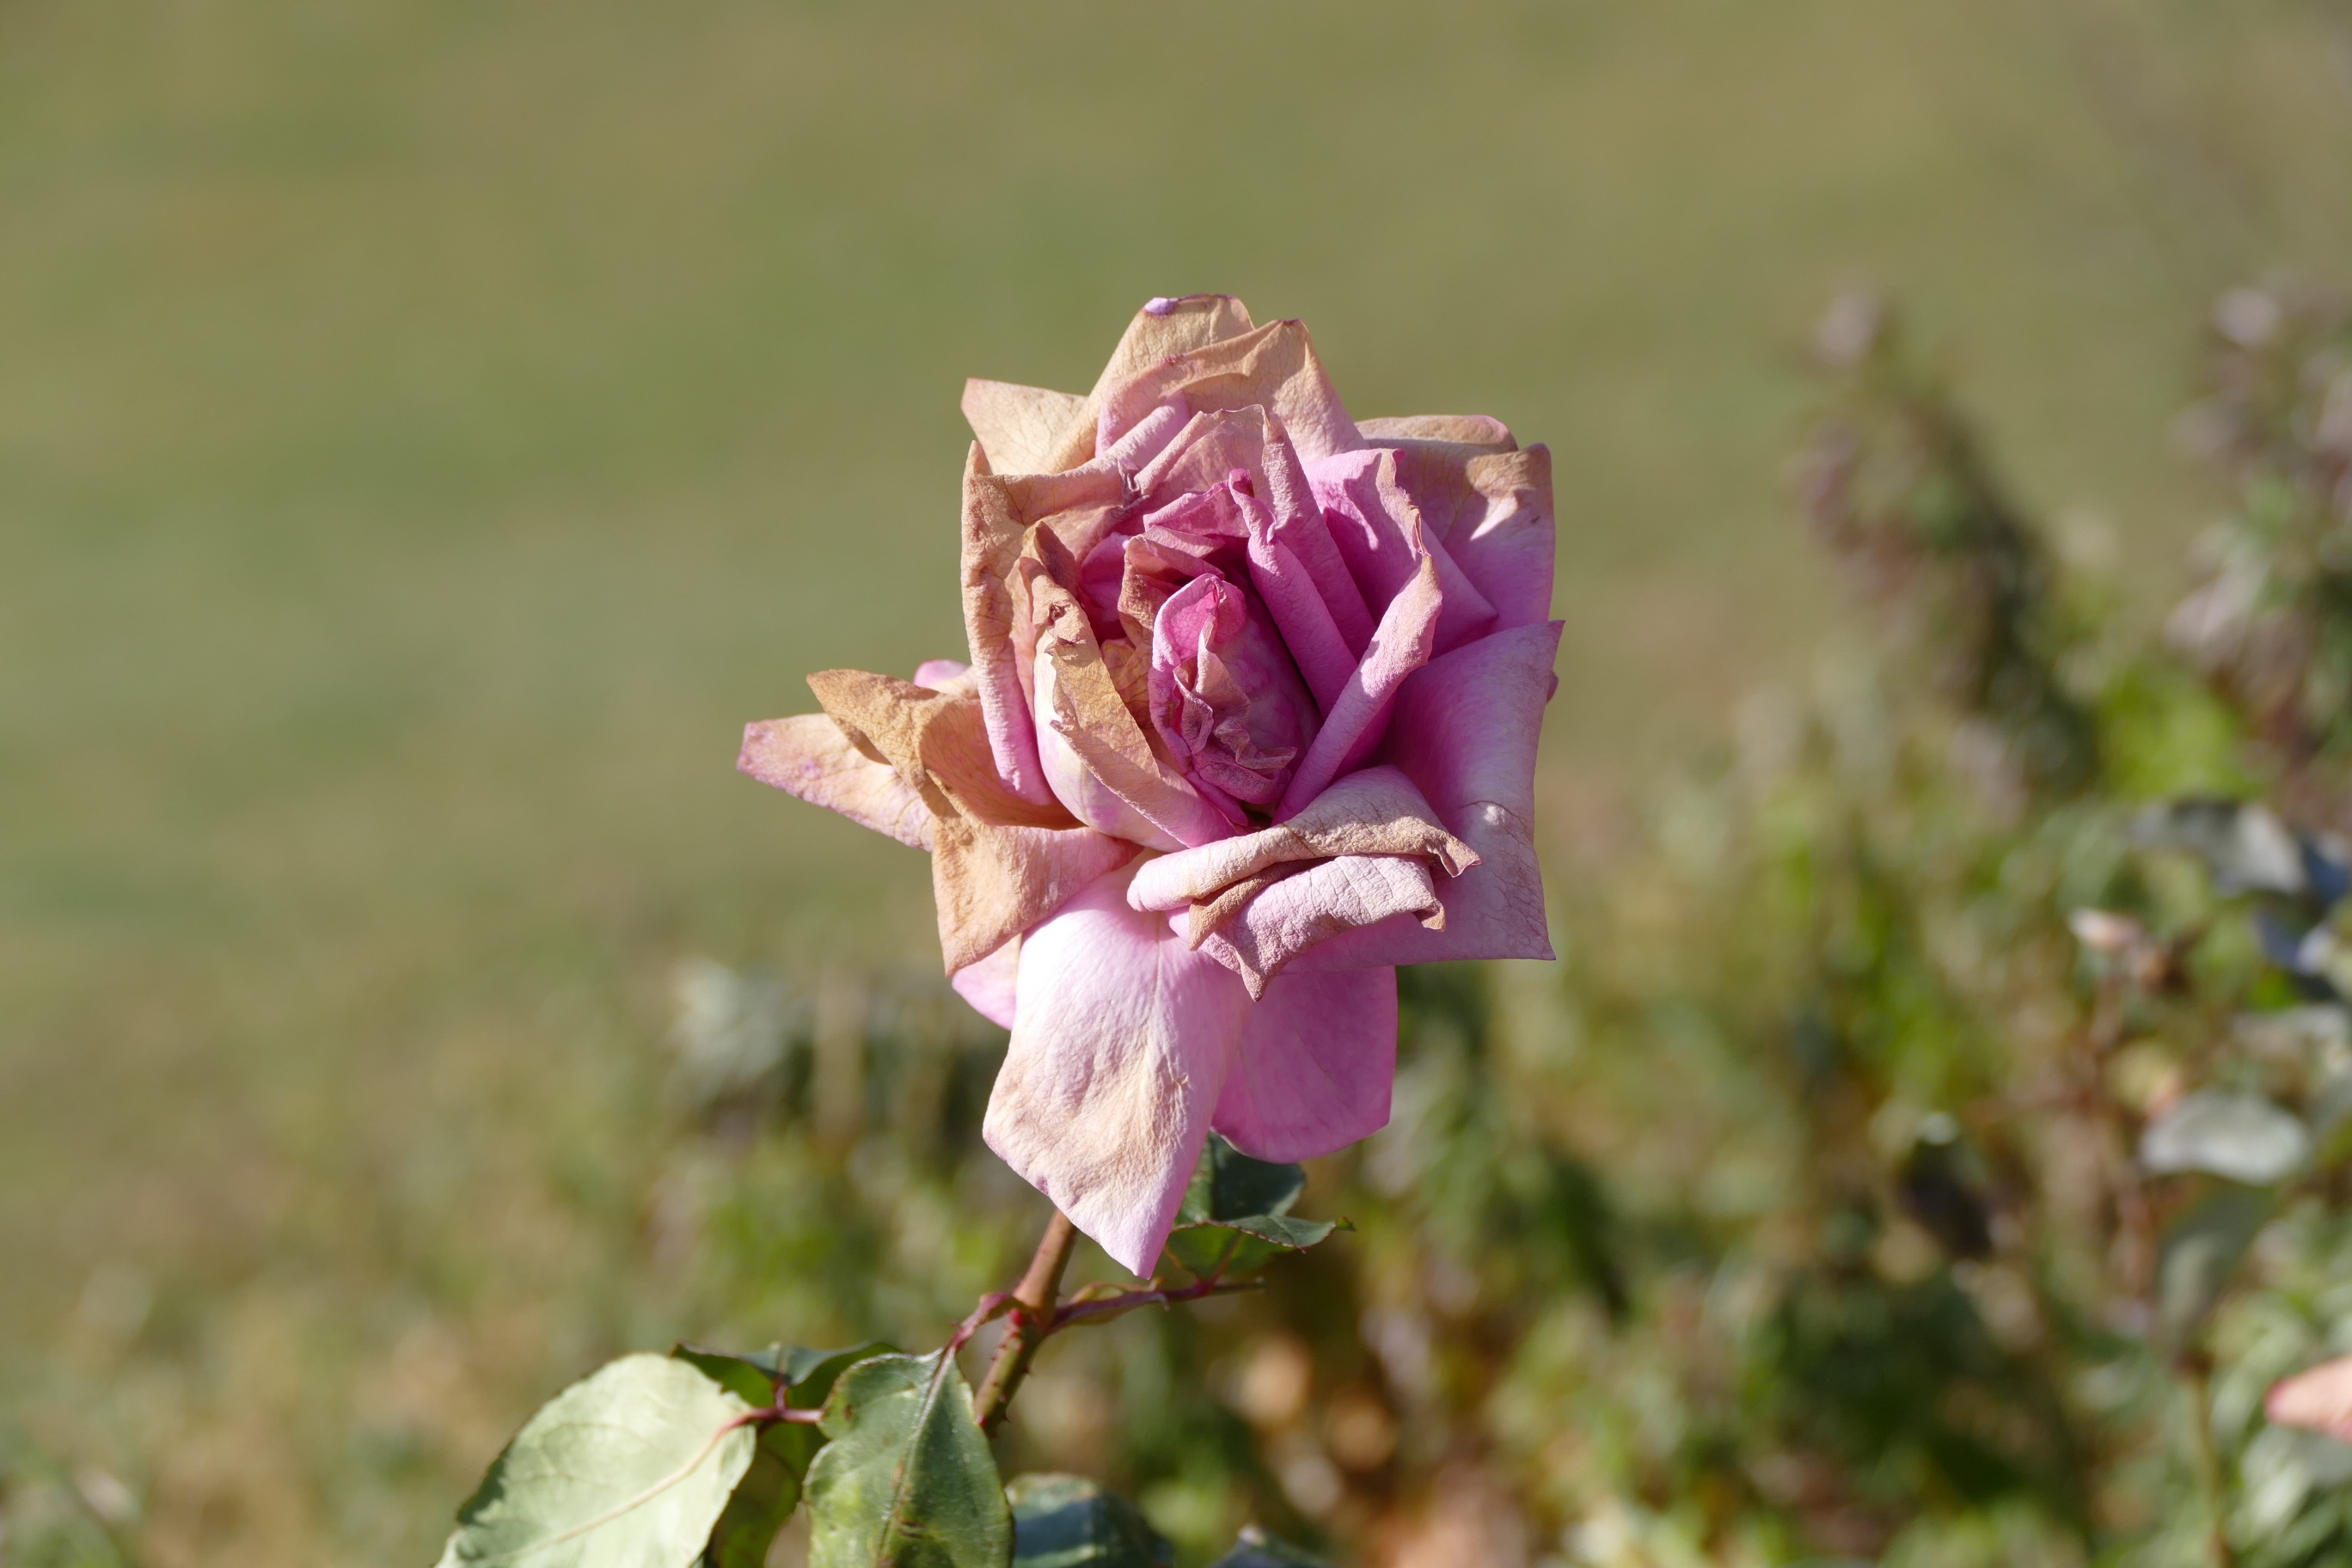 Dried Faded Rose Free Image